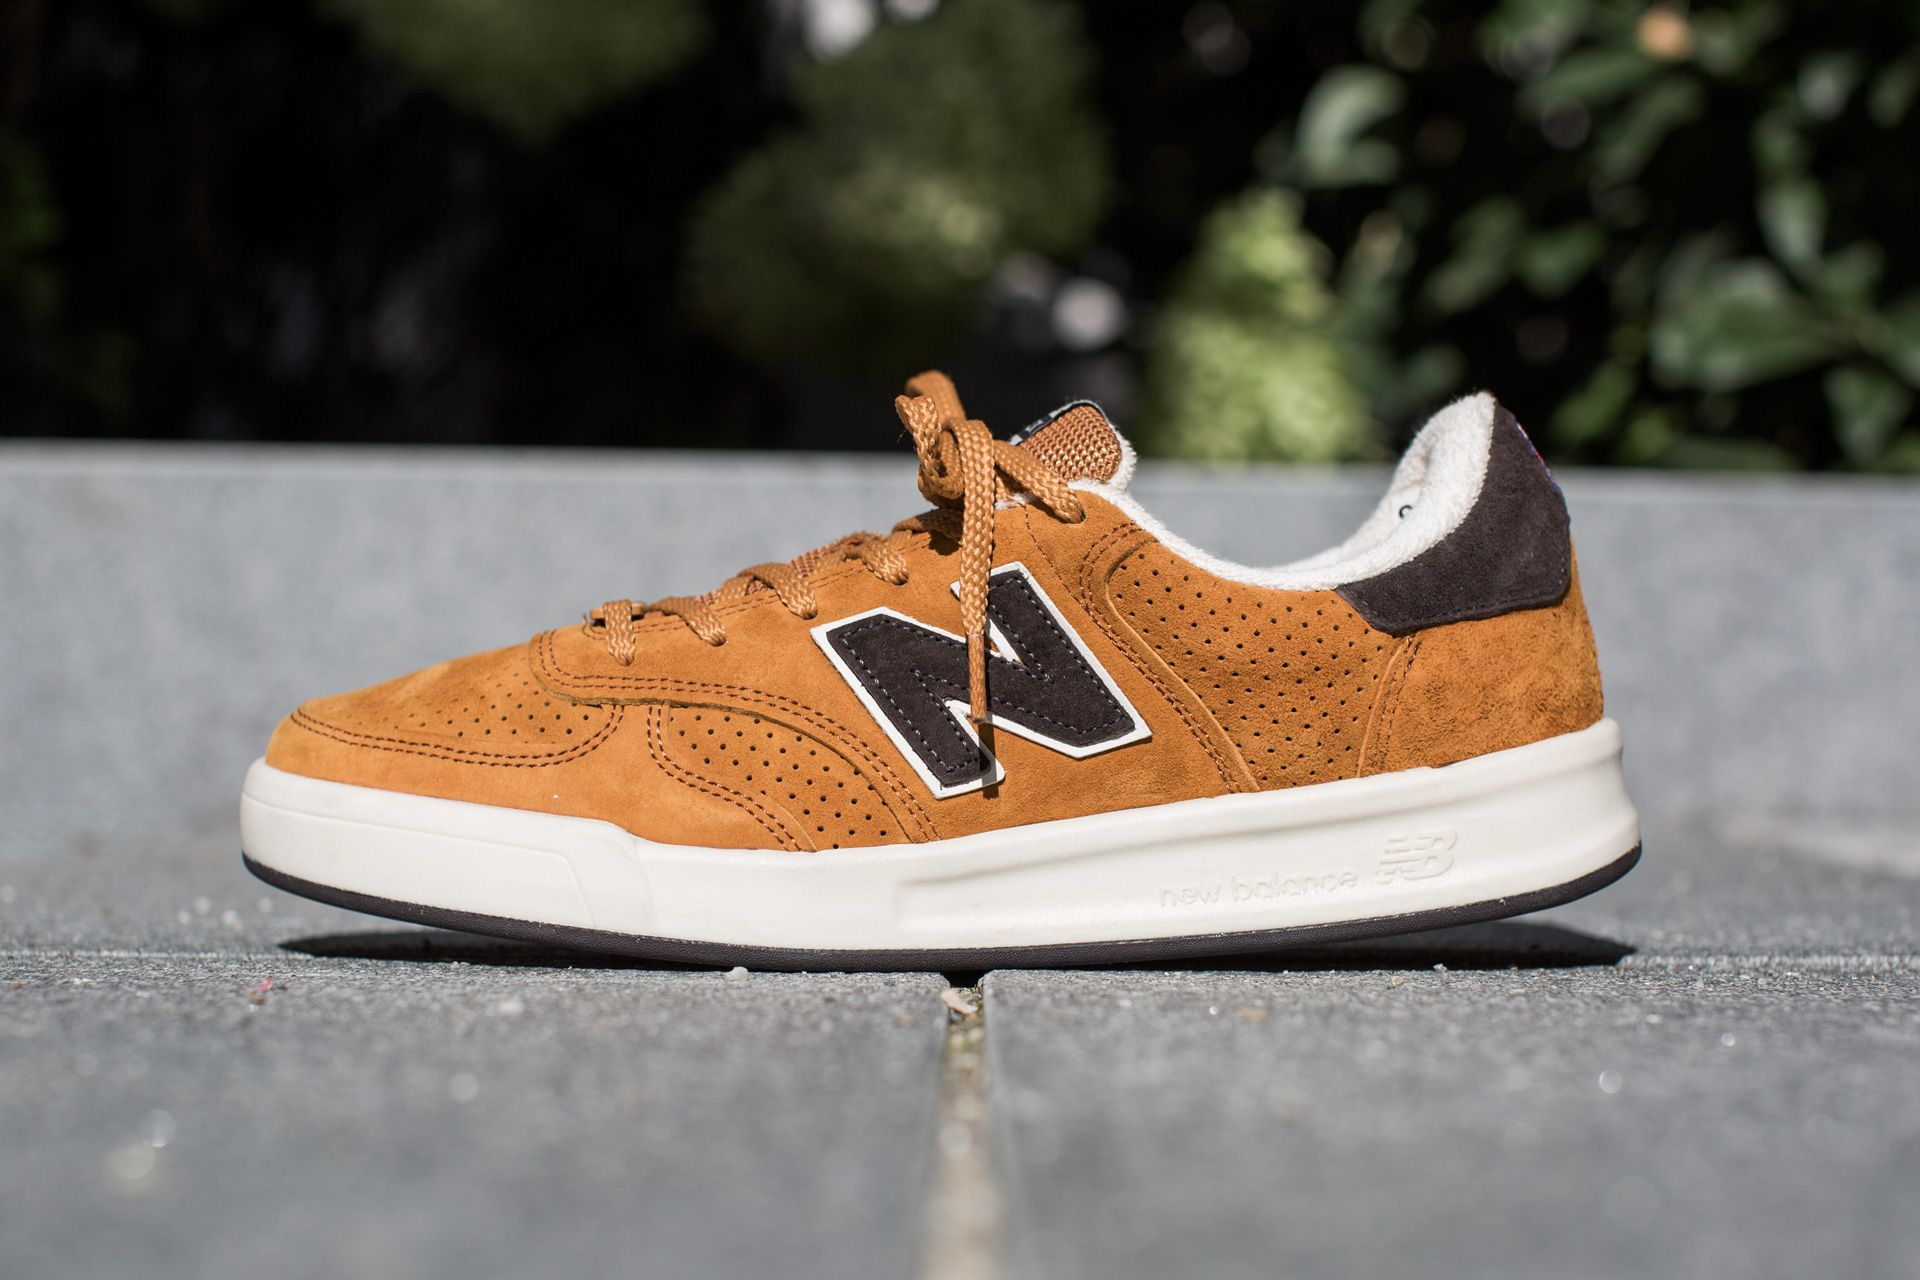 NEW BALANCE CT300 ATB 'REAL ALE PACK' TAN available at www.tint-footwear.com/new-balance-ct300-atb new balance made in england real ale pack tan leather retro tennis sneaker tint footwear studio munich